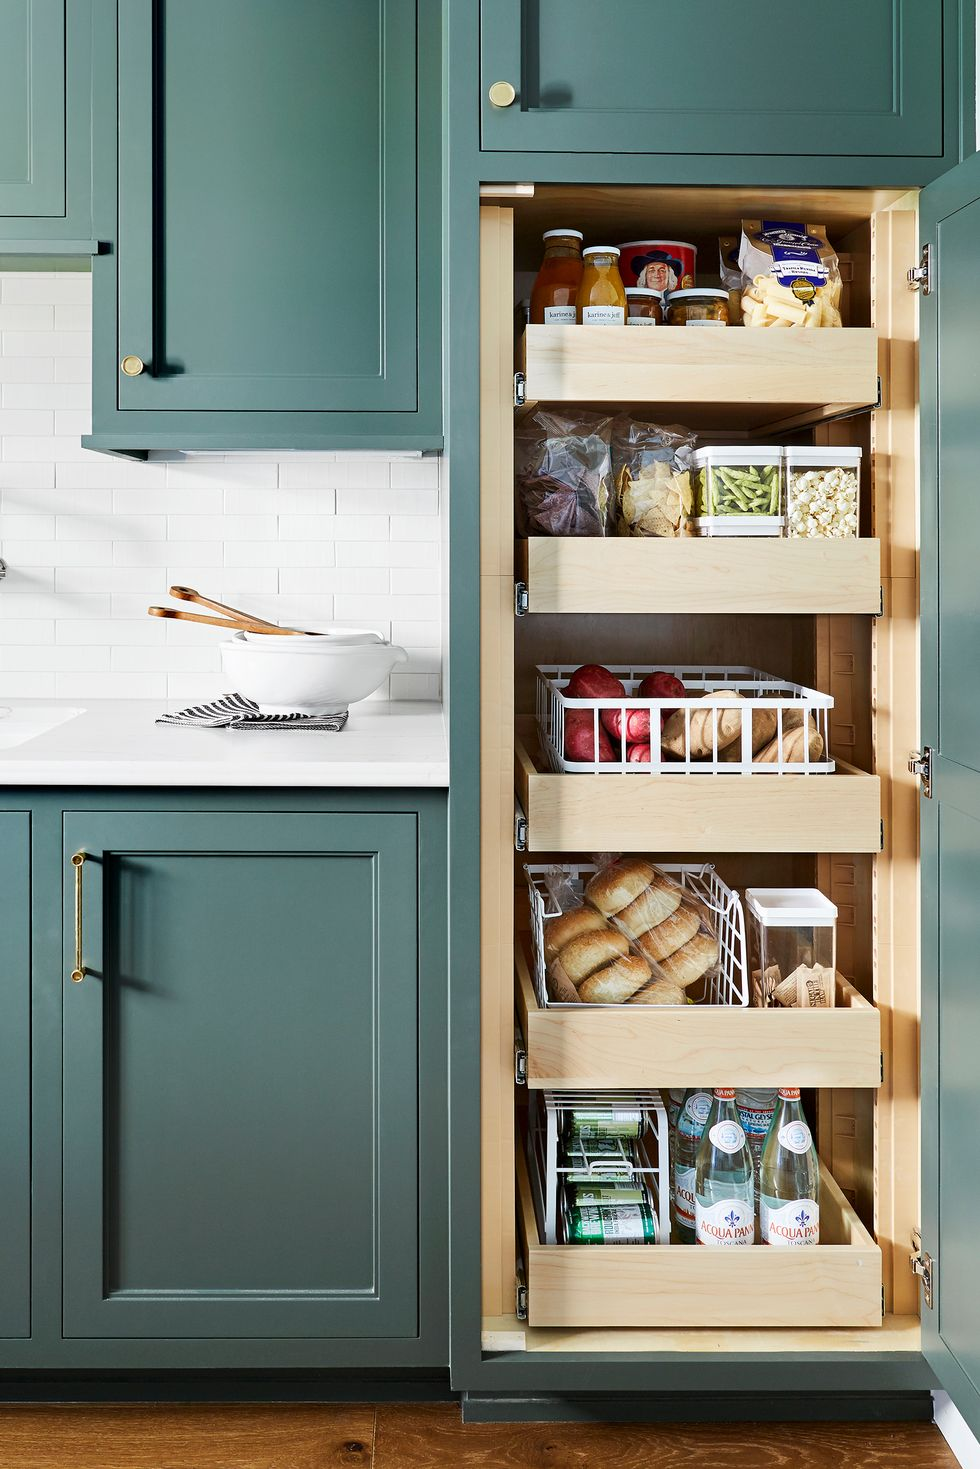 5 Tips For An Organized Pantry...Even if Yours is Tiny